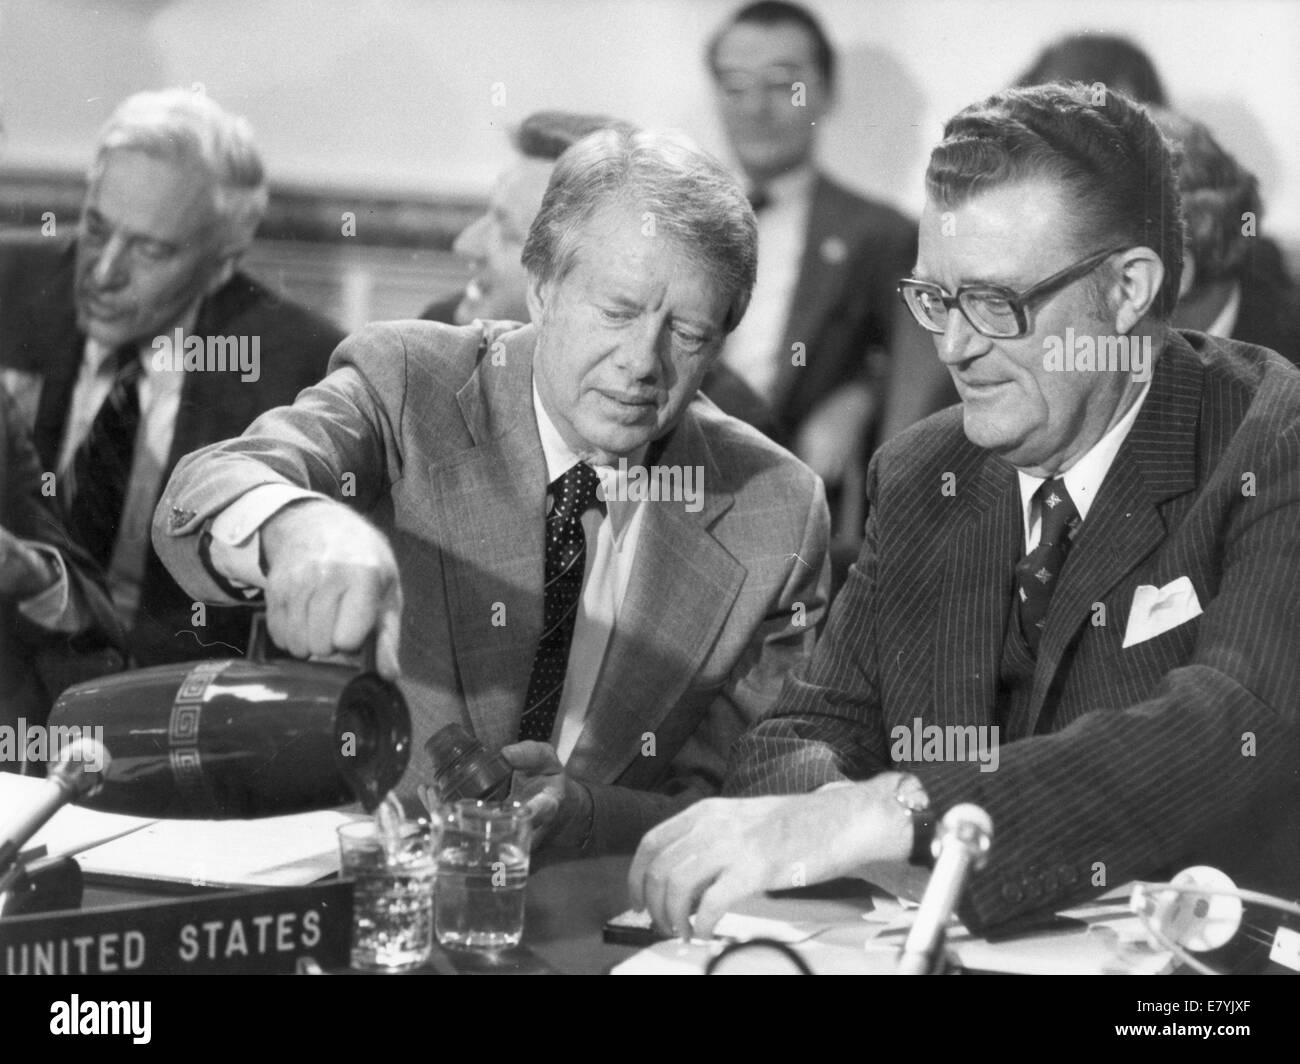 London, UK, UK. 10th May, 1977. U.S. President JIMMY CARTER pours water for U.S. Permanent Representative to NATO Stock Photo